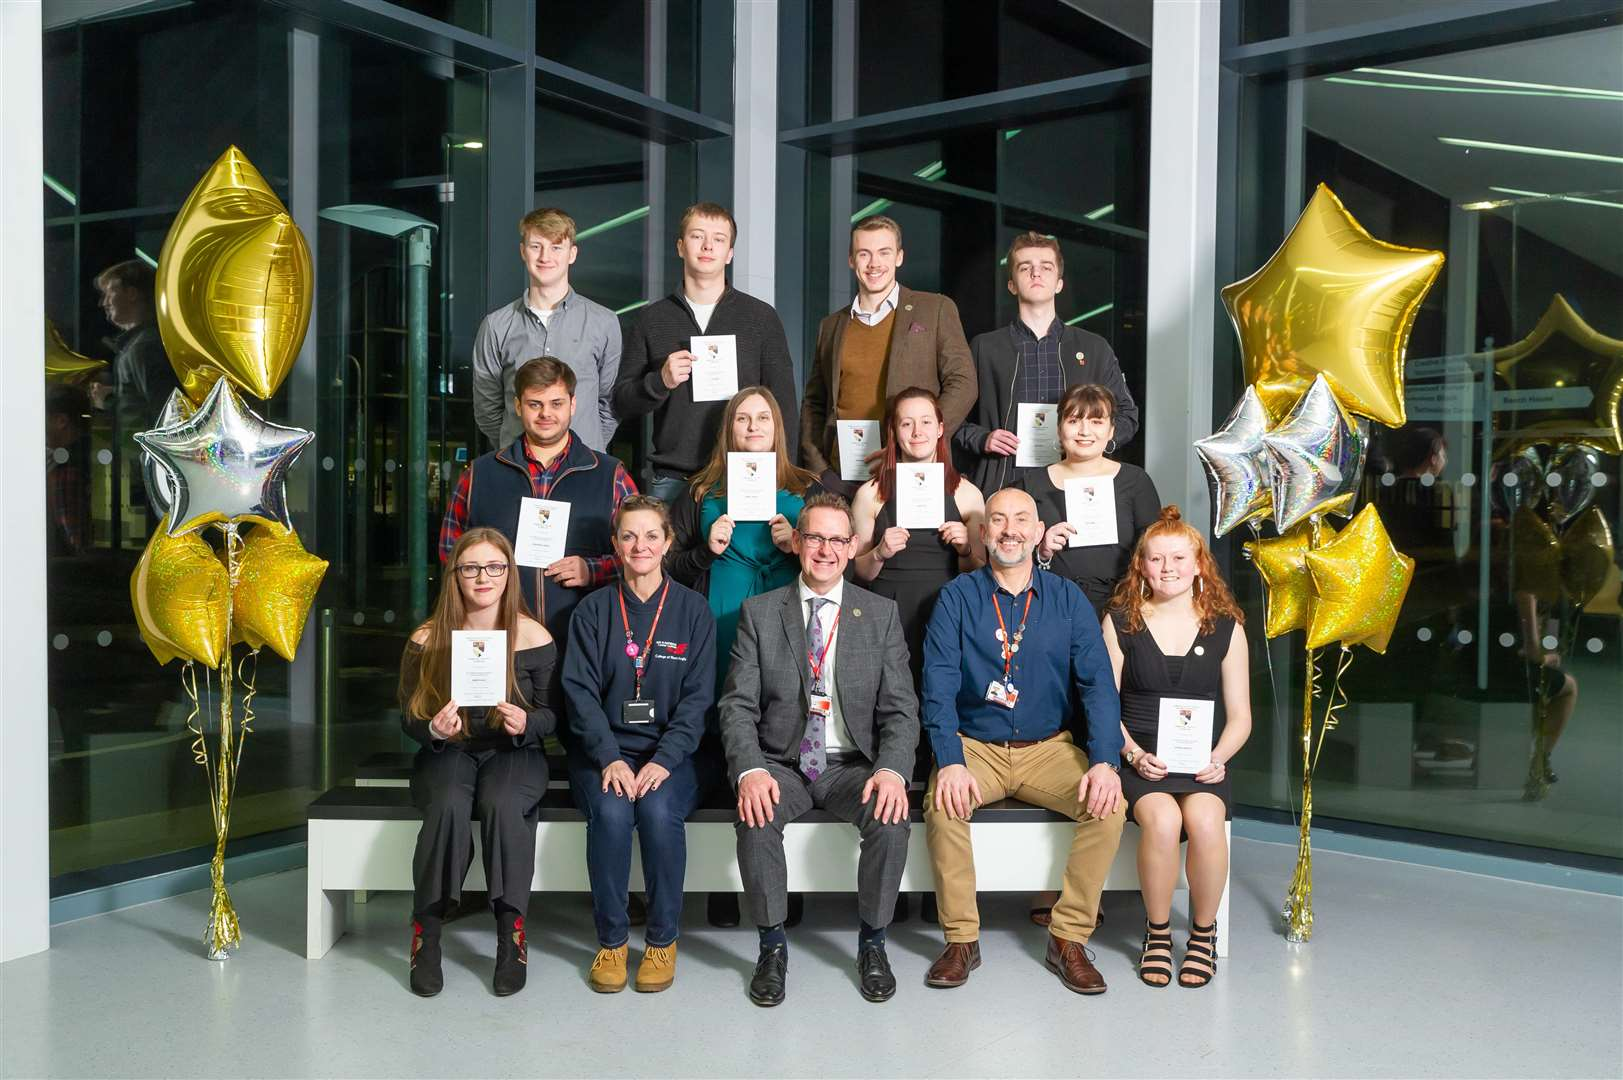 Students enjoy their success at the College of West Anglia's celebration evening. Pictures: Paul Tibbs (6464436)